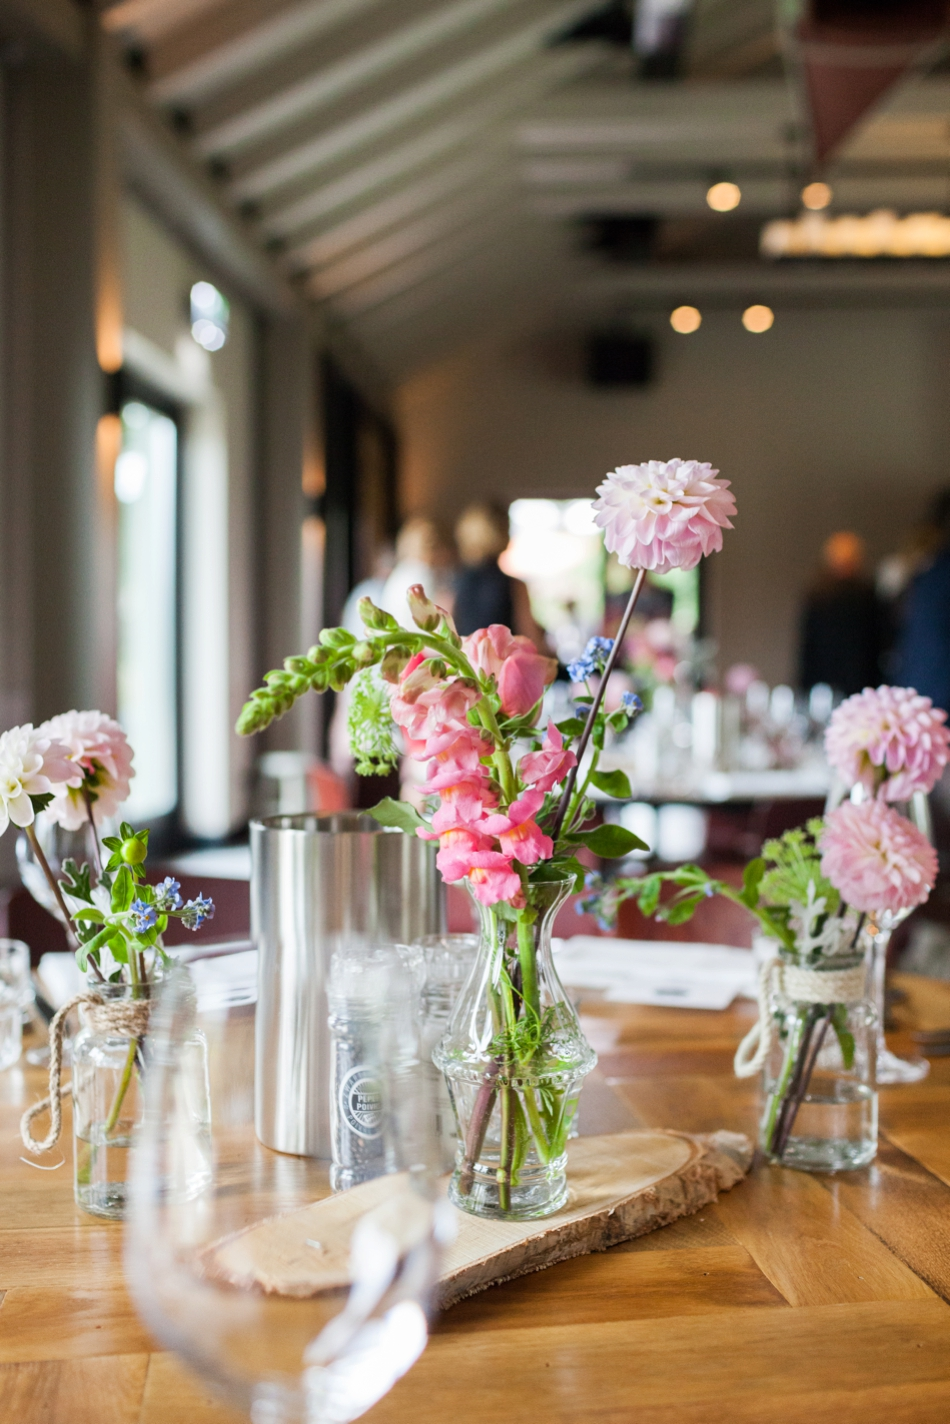 Bruiloft styling in Restaurant Villa Welgelegen